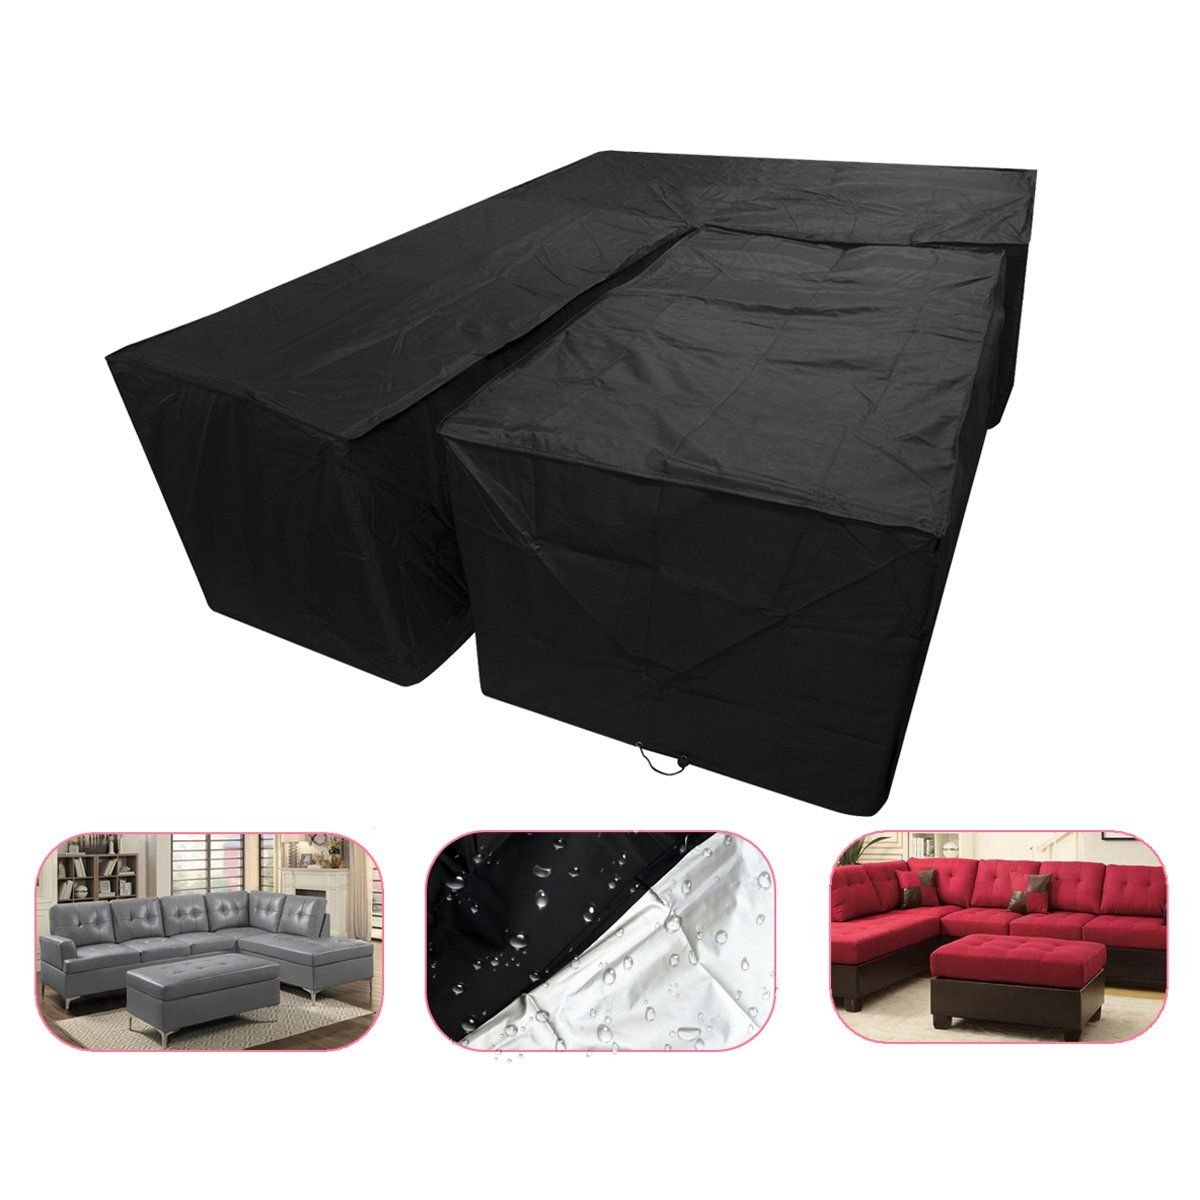 2pcs Set Garden Furniture Waterproof Cover Small L Shaped Dustproof Sofa Couch Cover Set Couch Covers Travel Supplies Garden Furniture